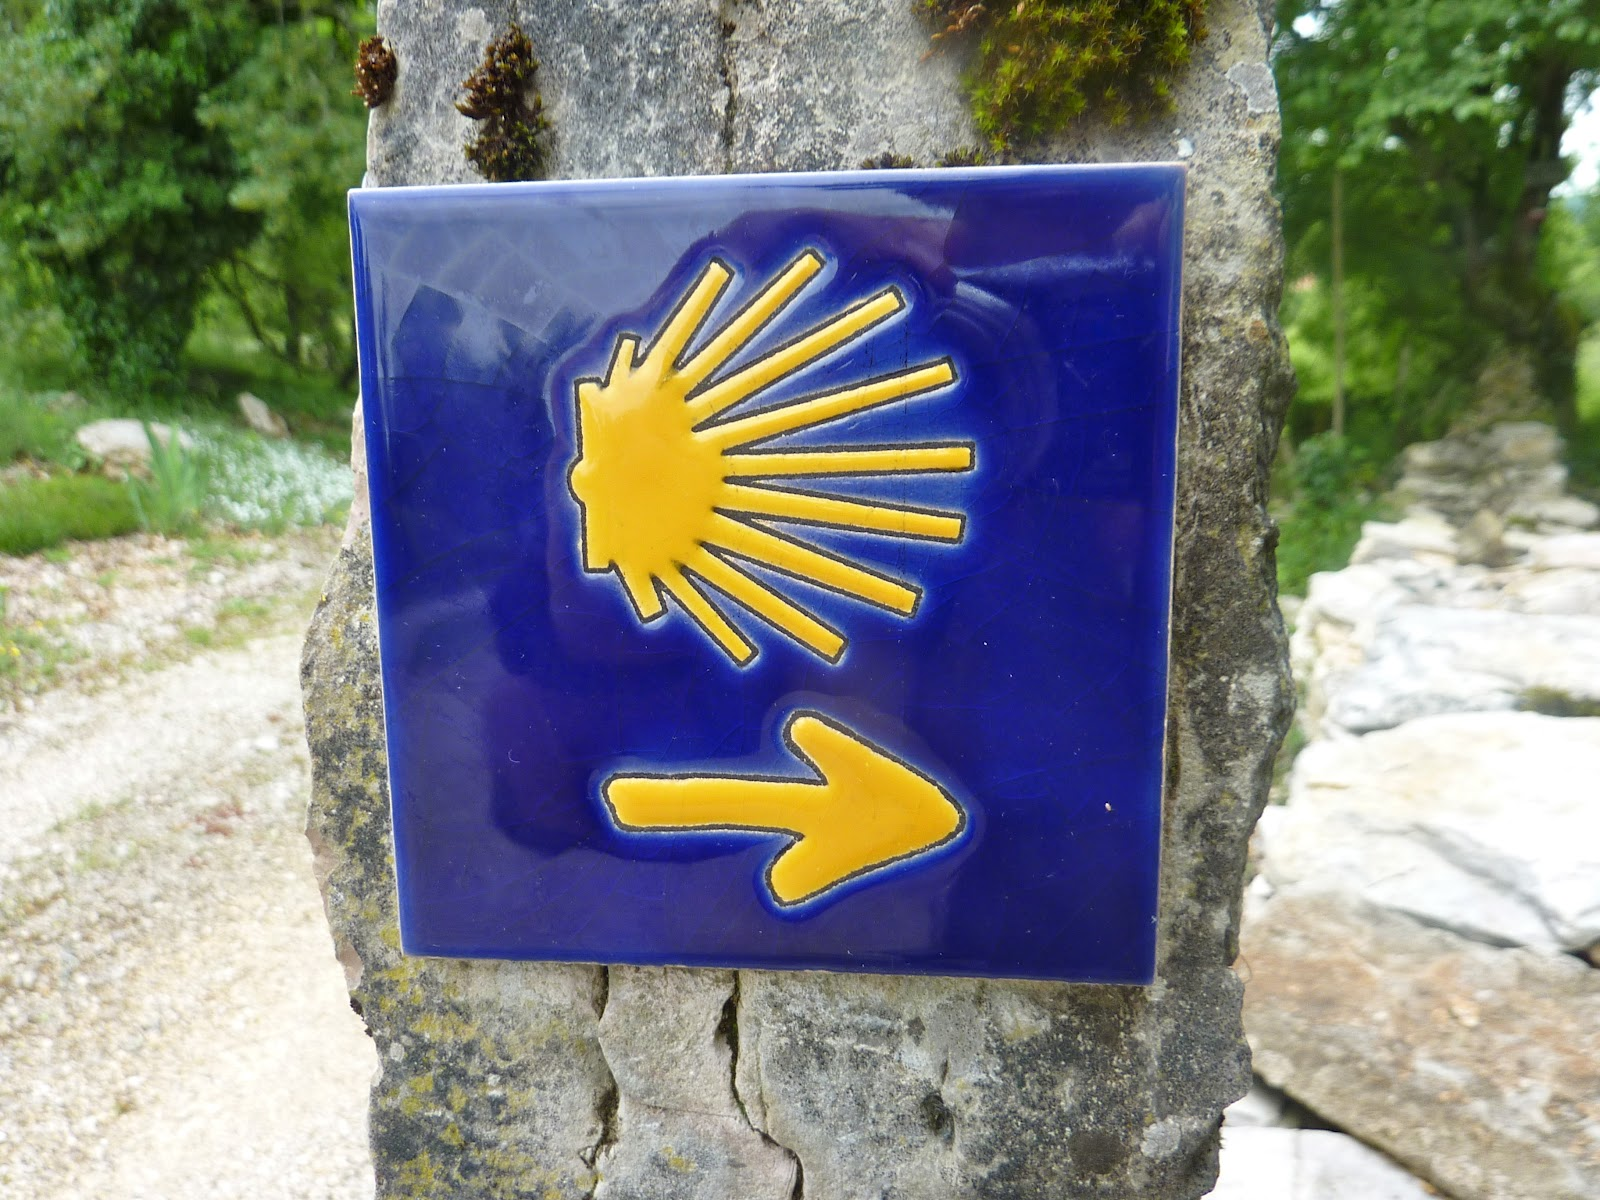 Camino Santiago Shell Come Ino Down To De Santiago Background Information On The